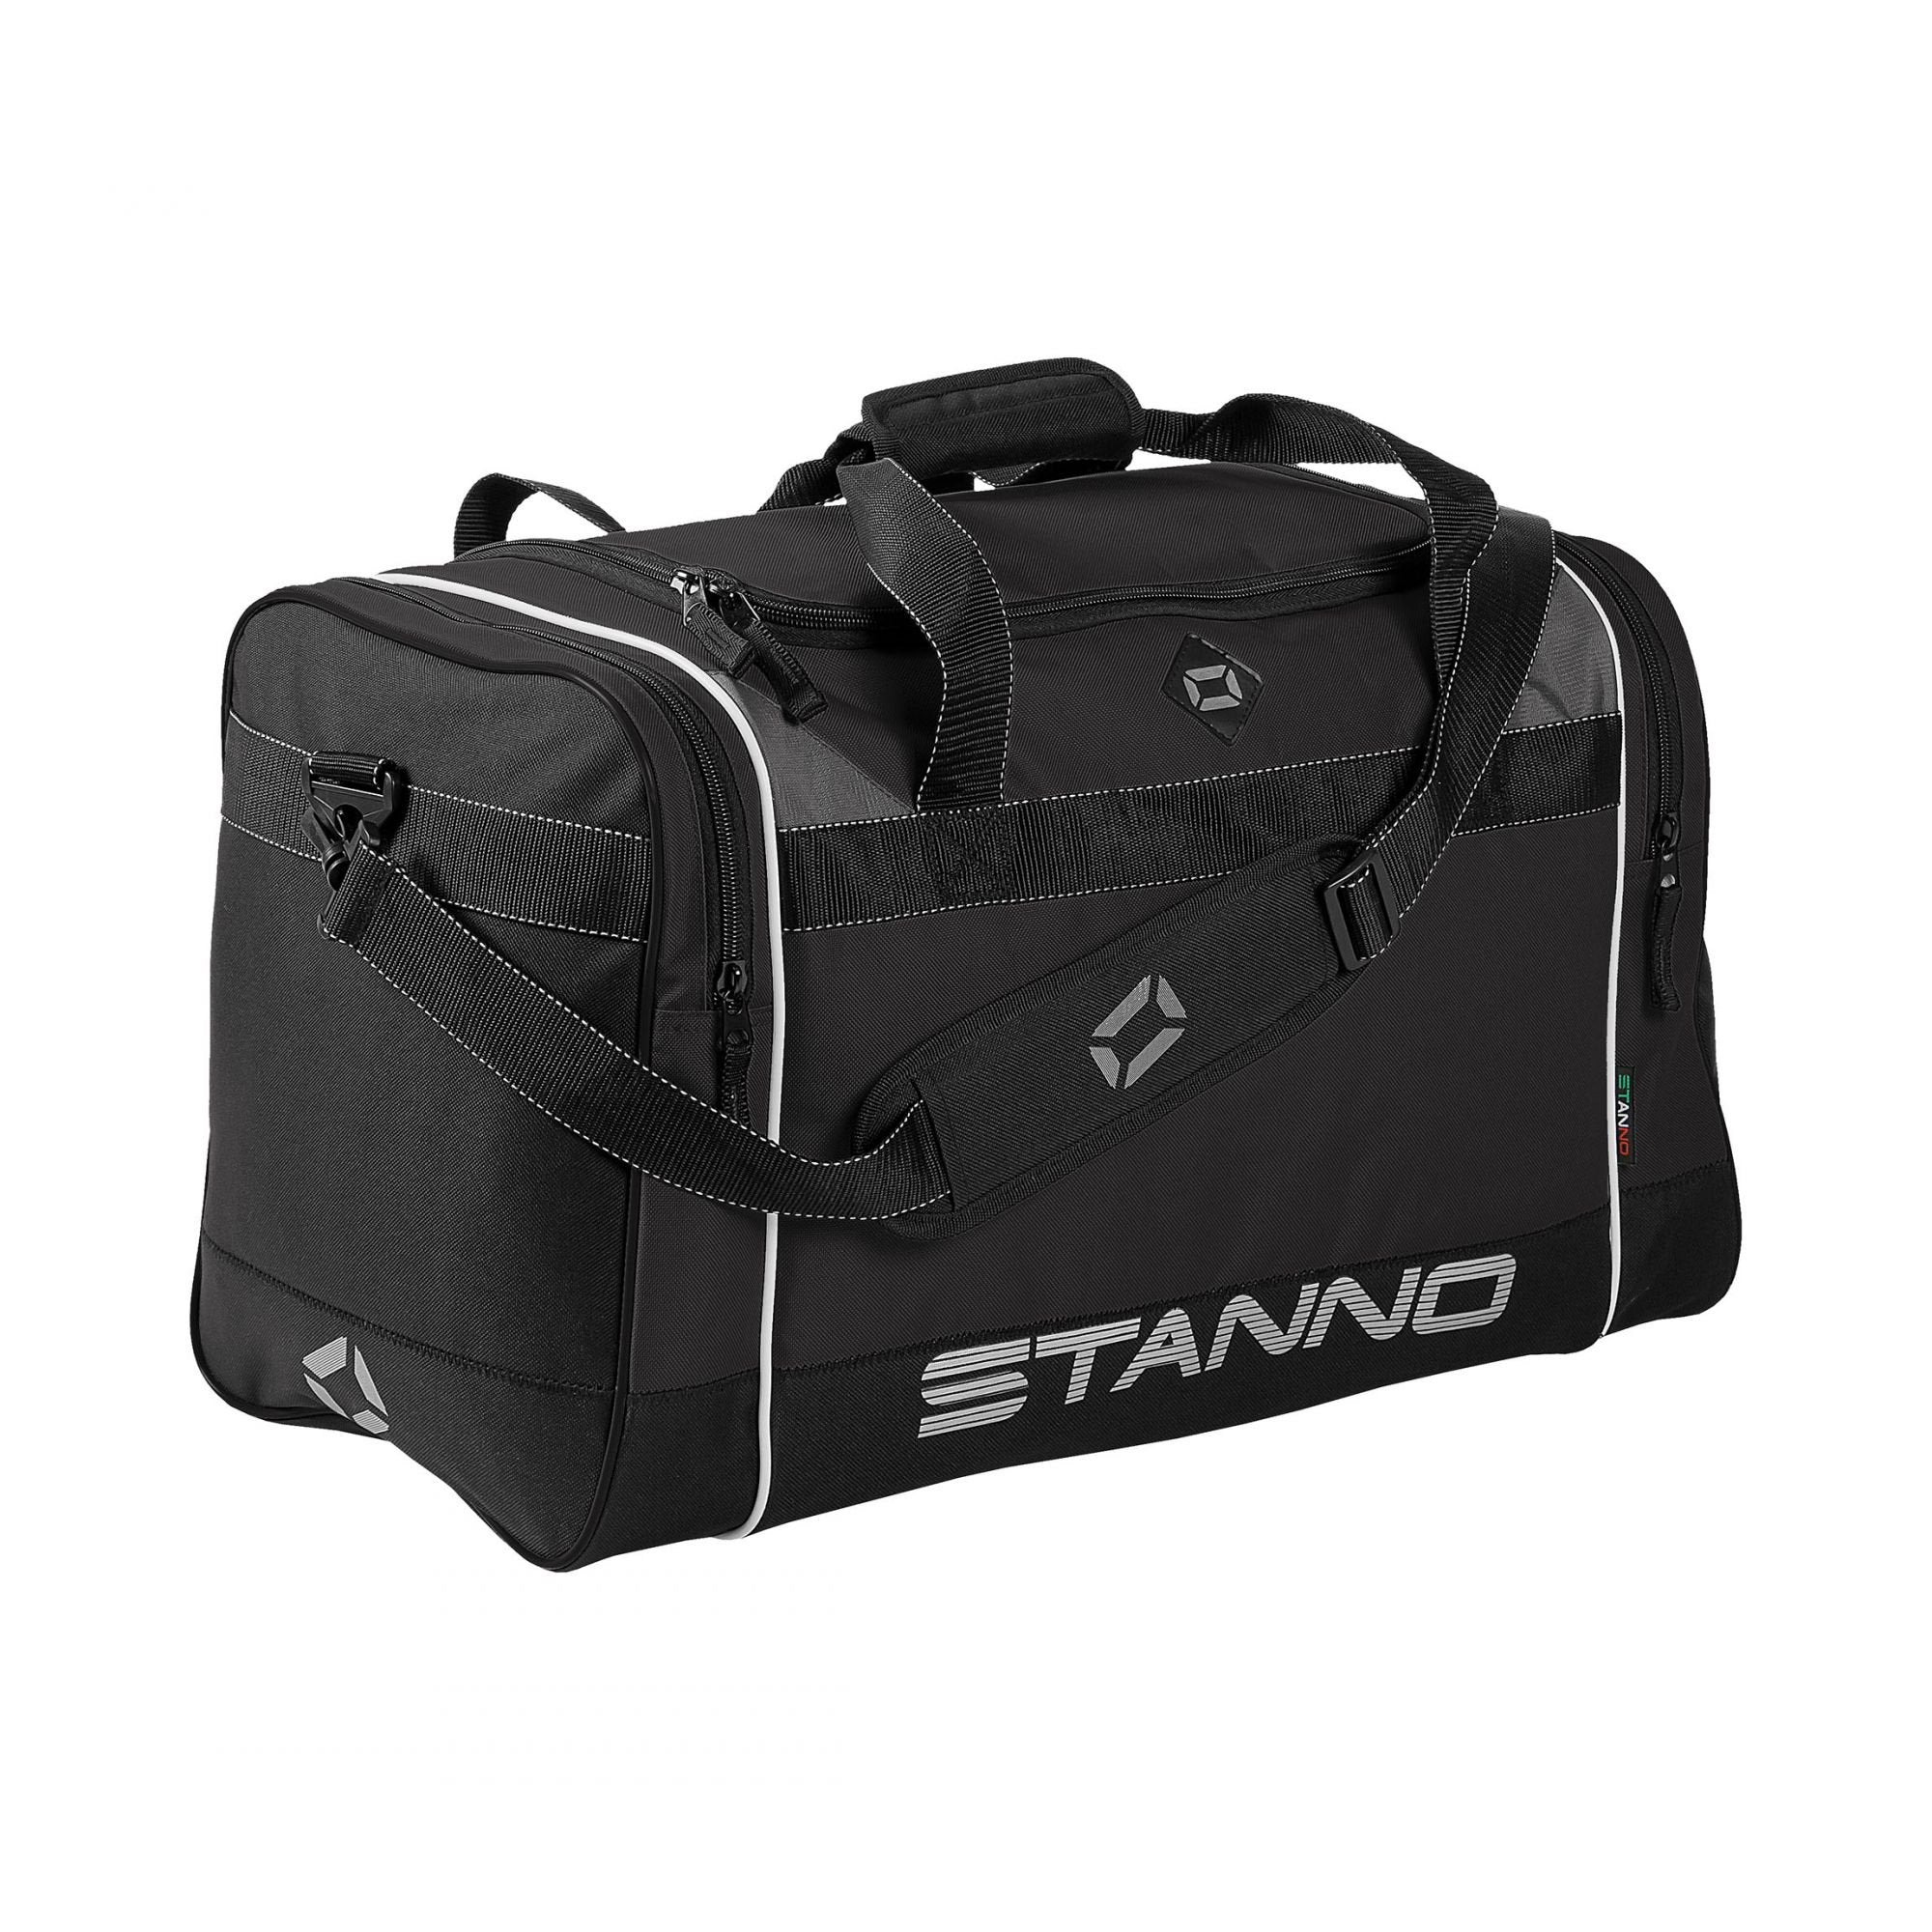 Stanno Sevilla Excellence sports bag in black with shoulder strap. Large text logo at the bottom of the side panel.